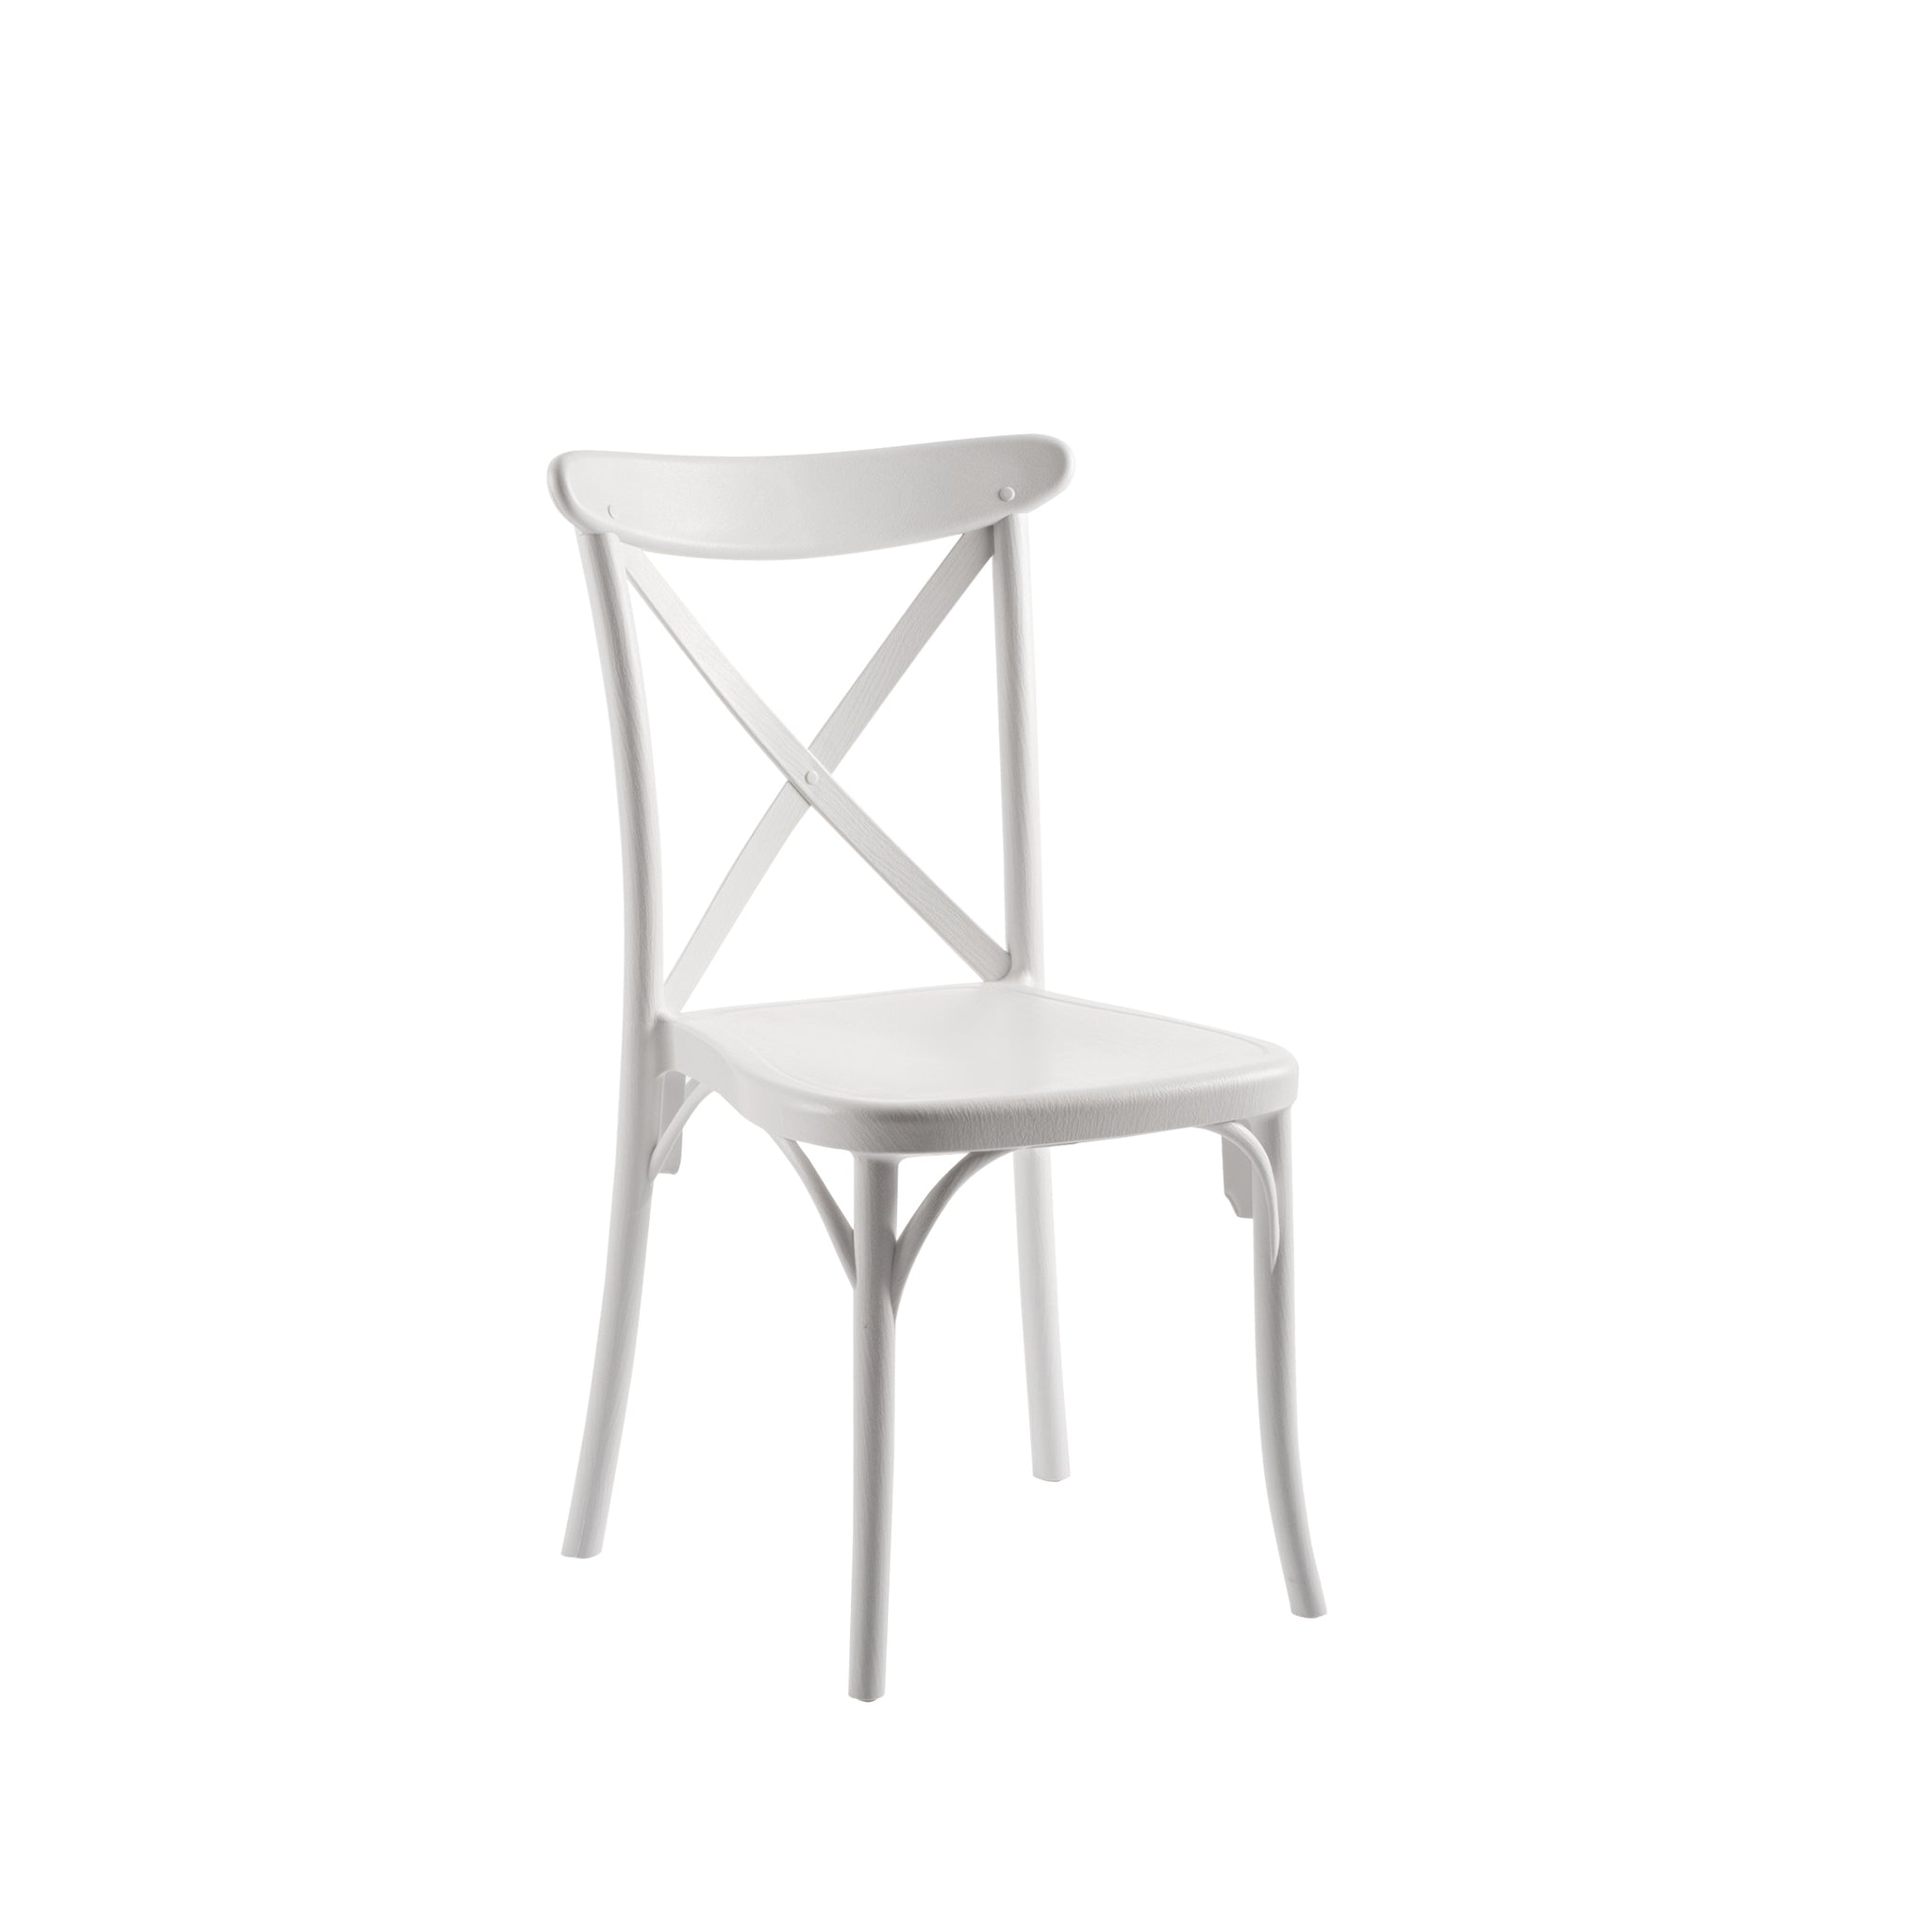 Hedcor Soul Chair